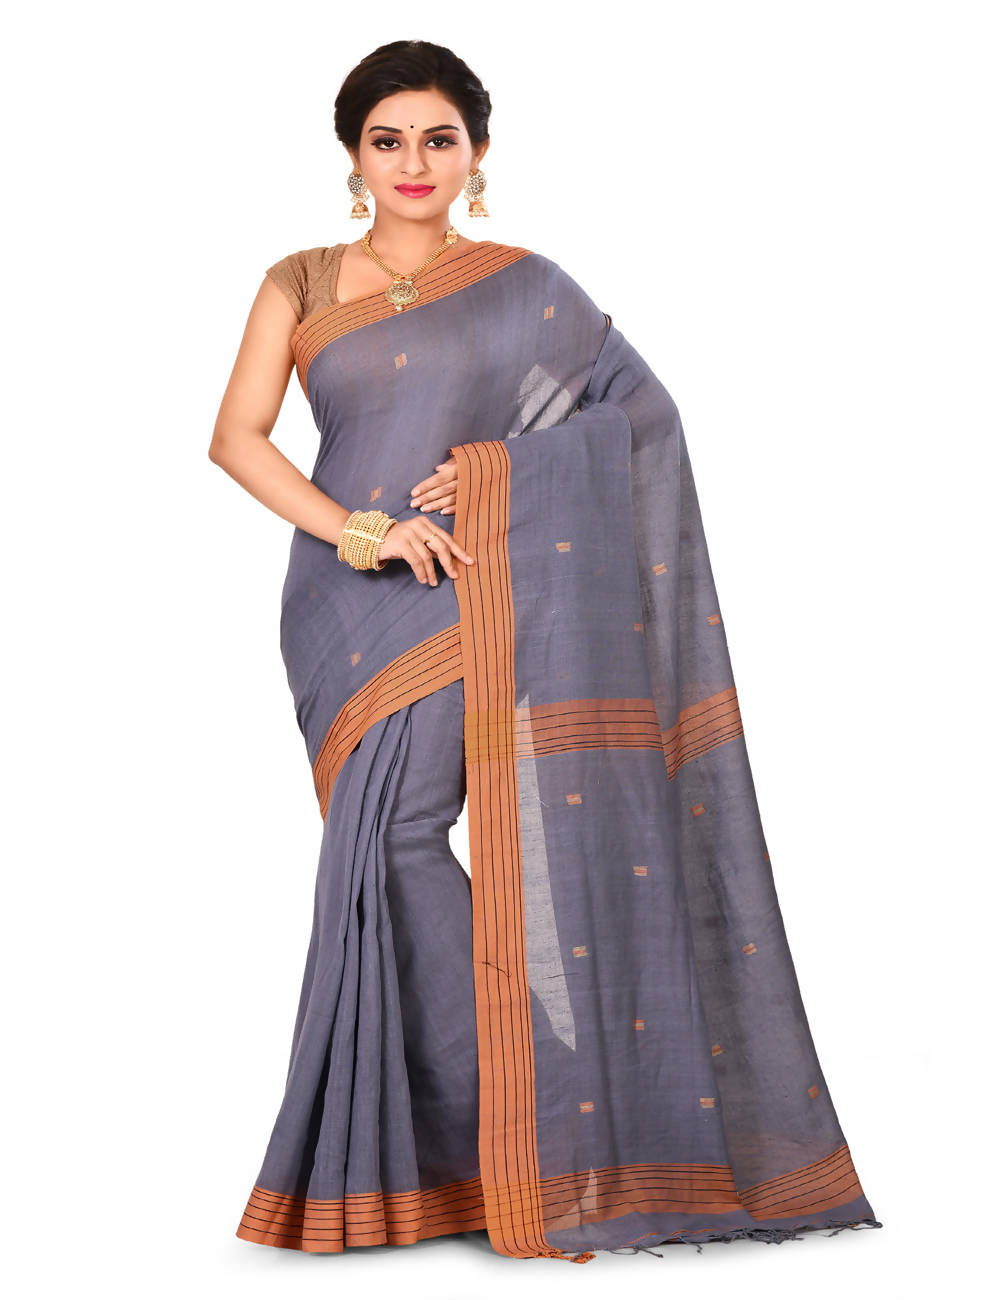 Grey Bengal Jamdani Handspun Handloom matka cotton saree